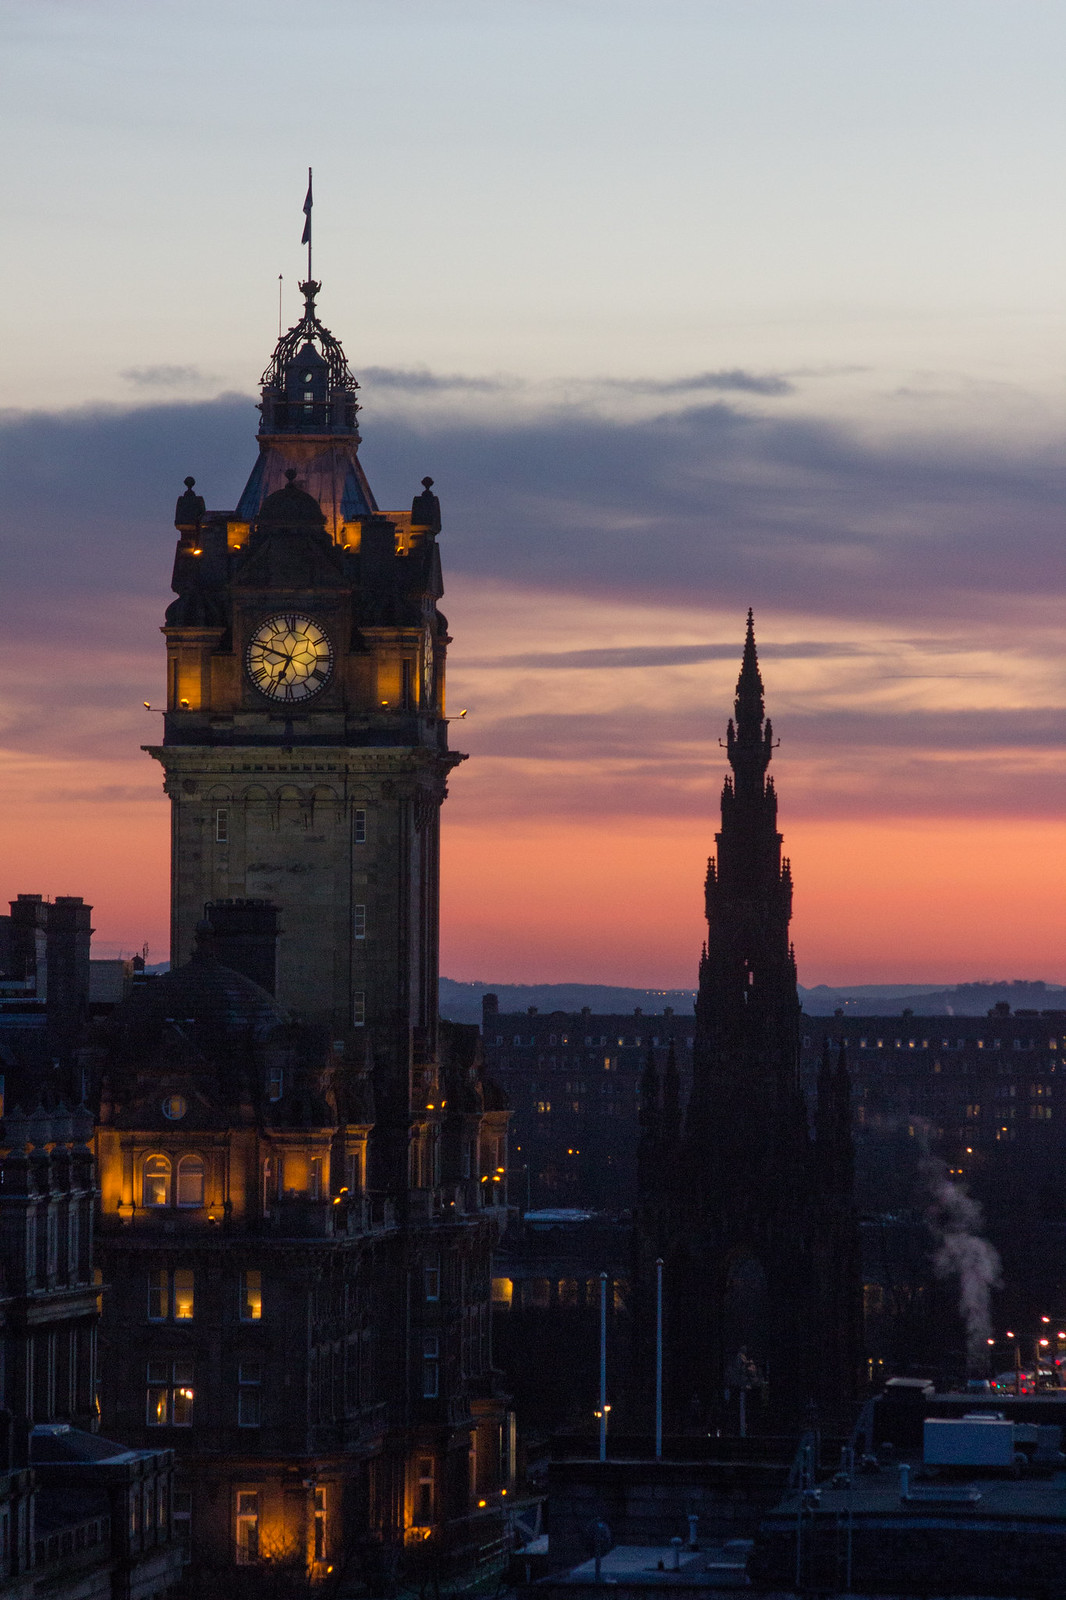 Sunset sky behind The Balmoral, Edinburgh, taken from Calton Hill